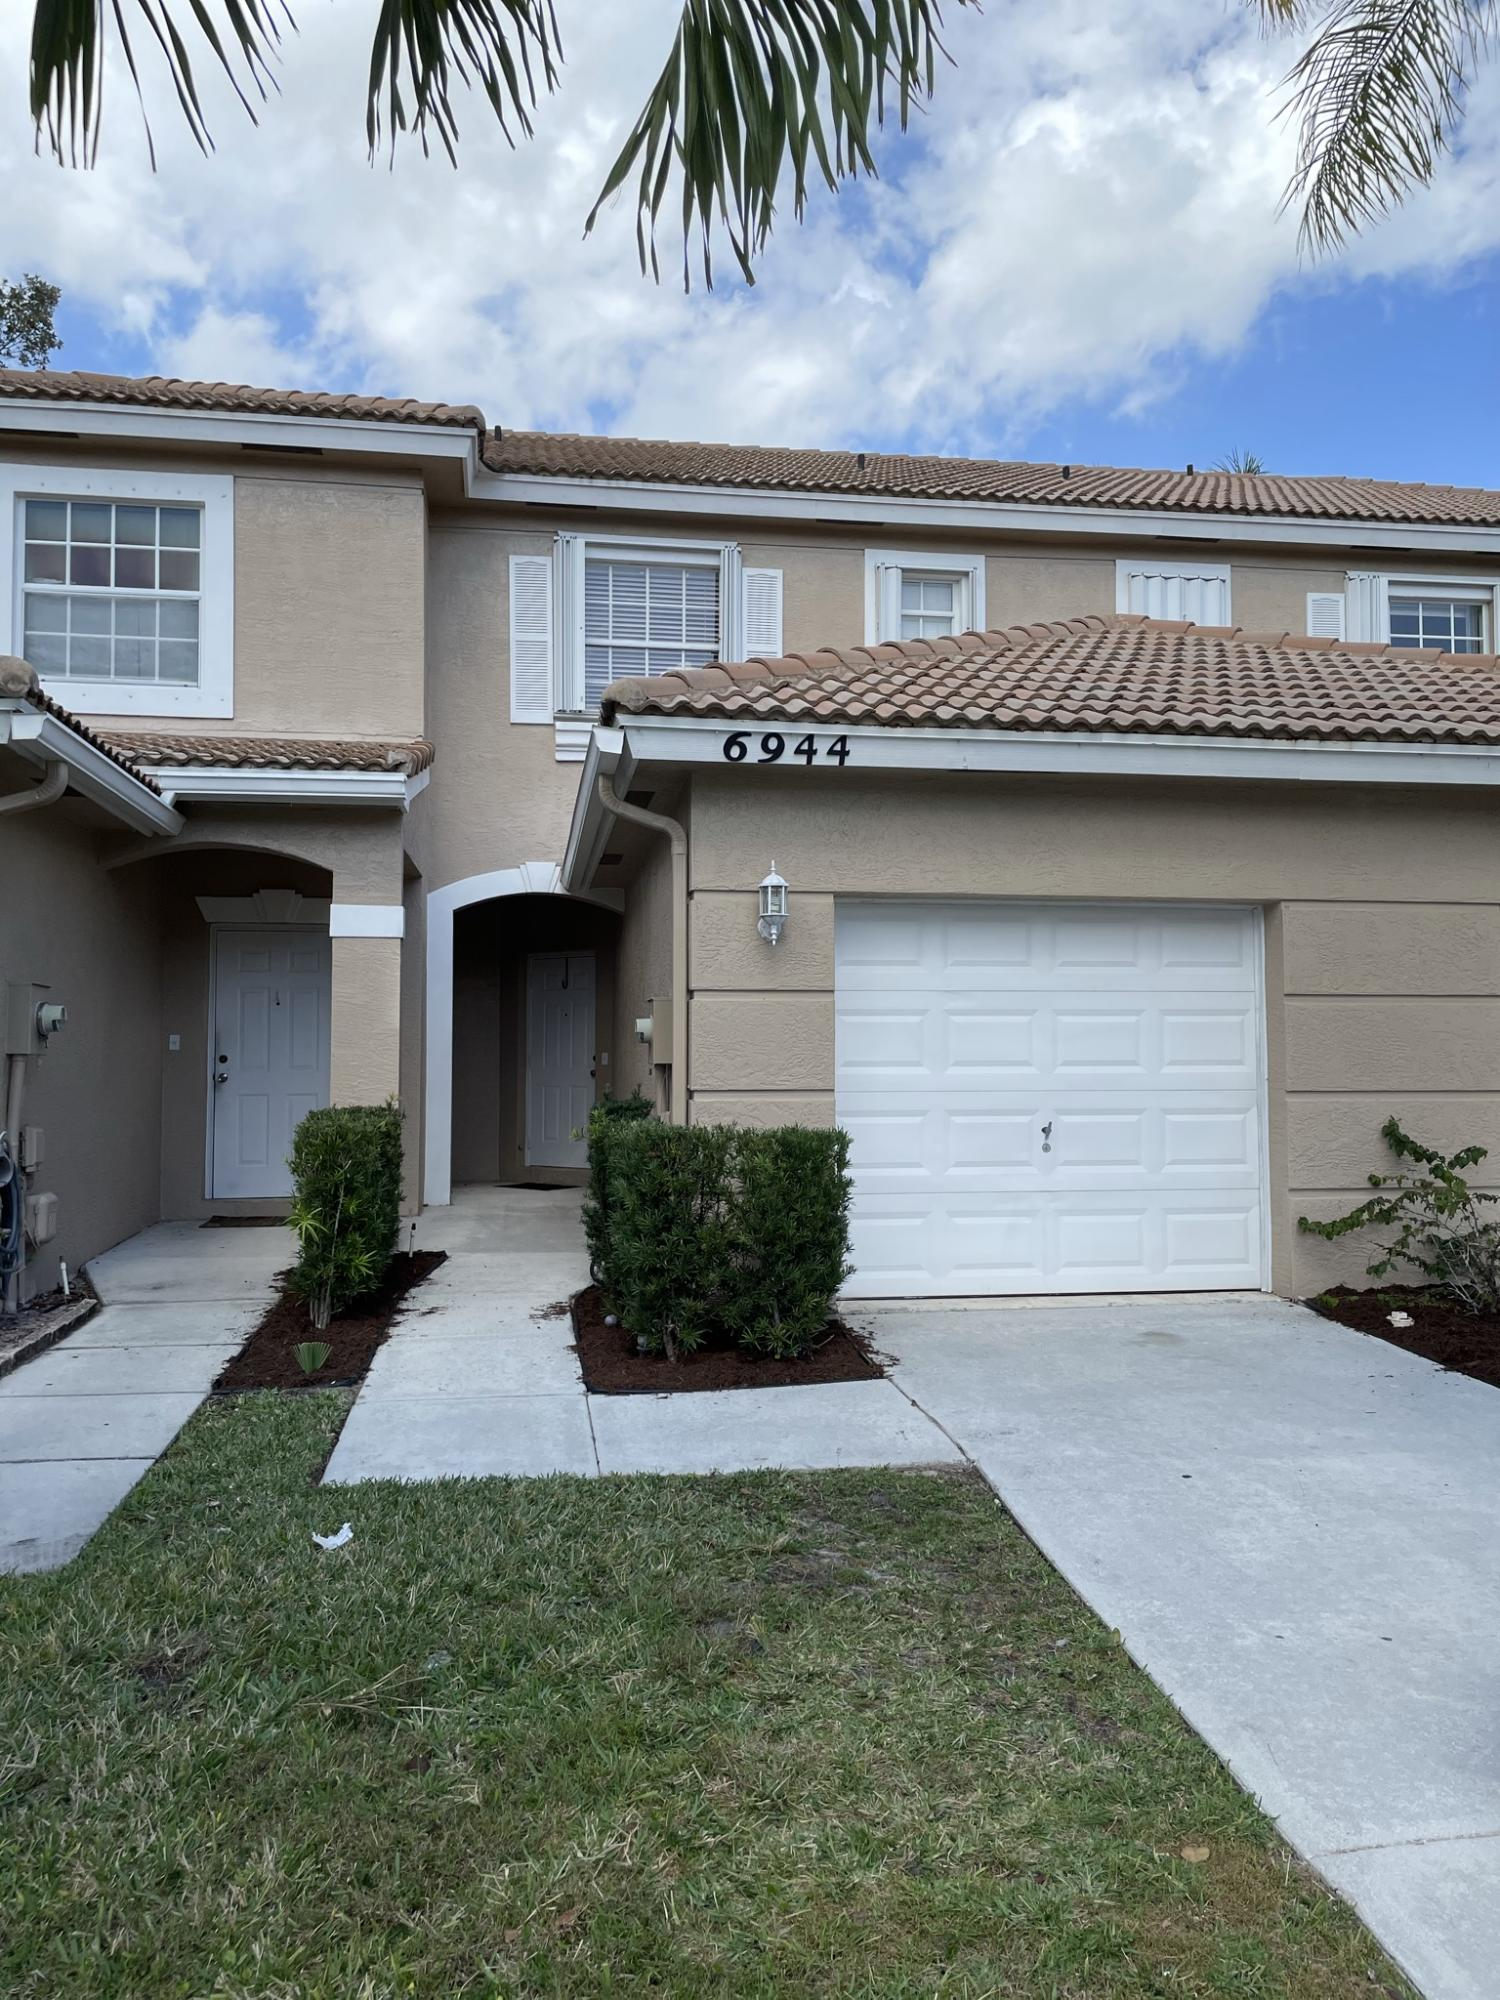 Home for sale in Smithbrooke Lake Worth Florida